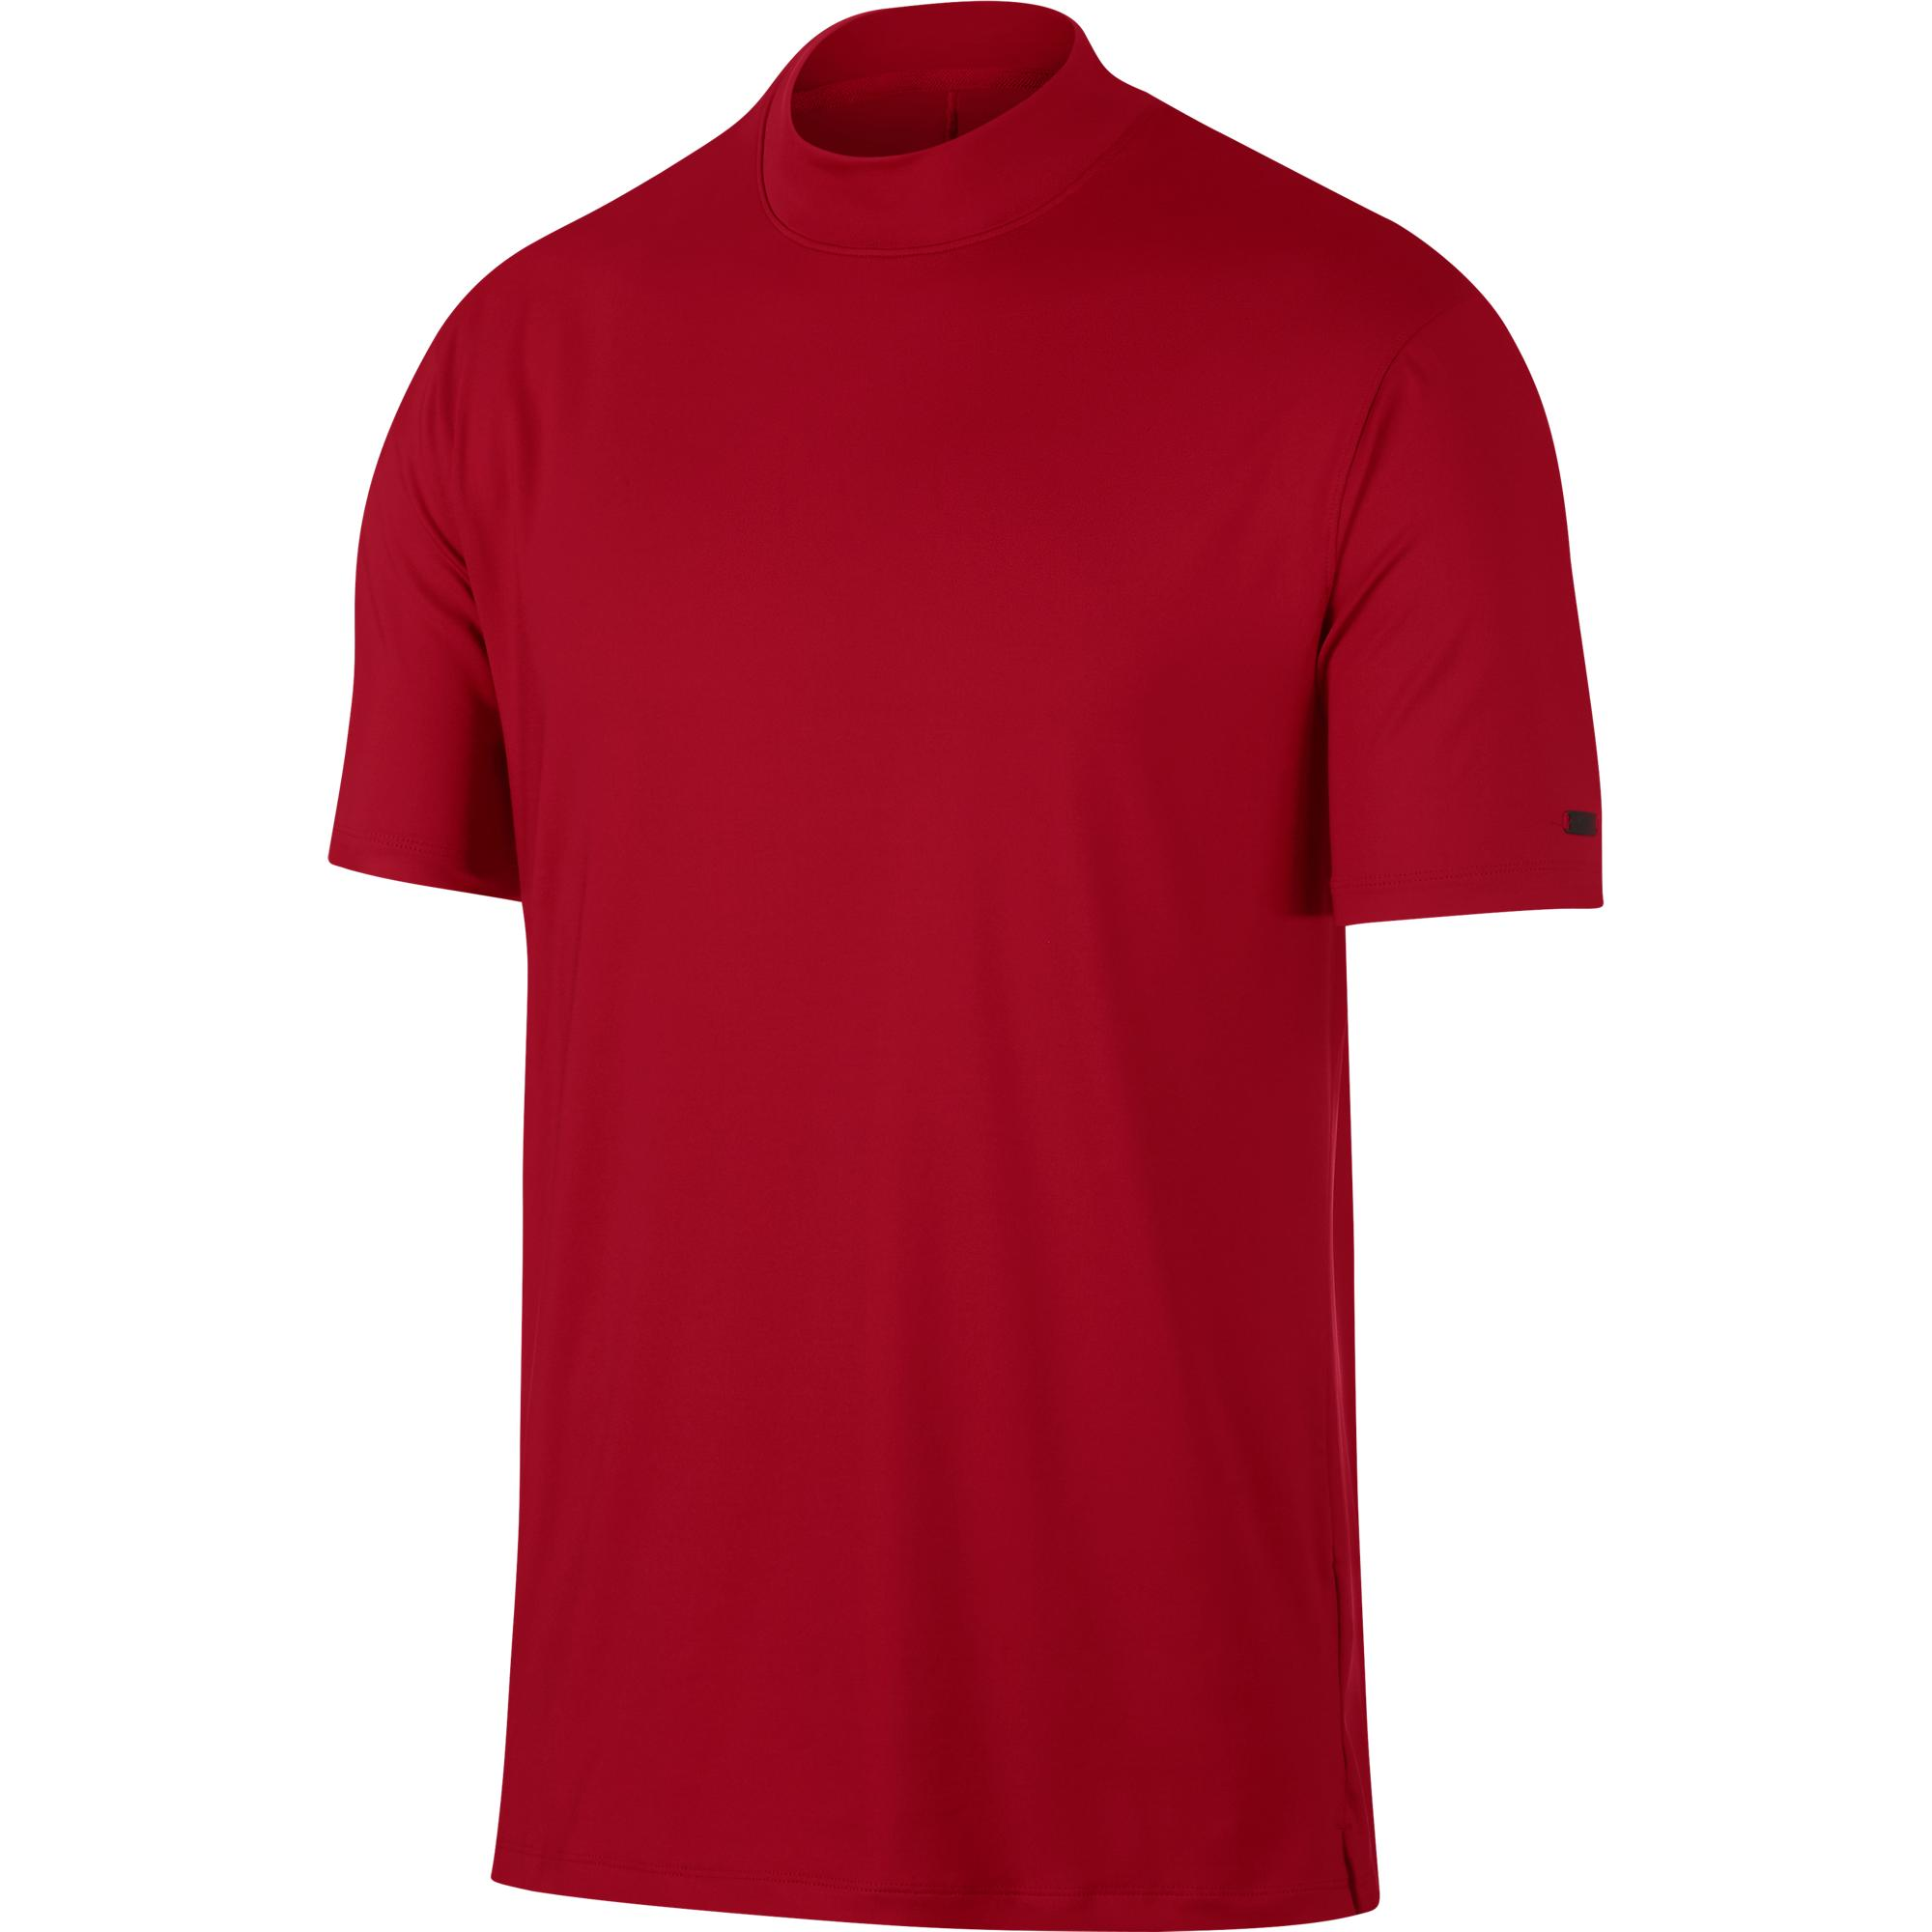 Men's Dri-FIT TW Vapor Short Sleeve Mock